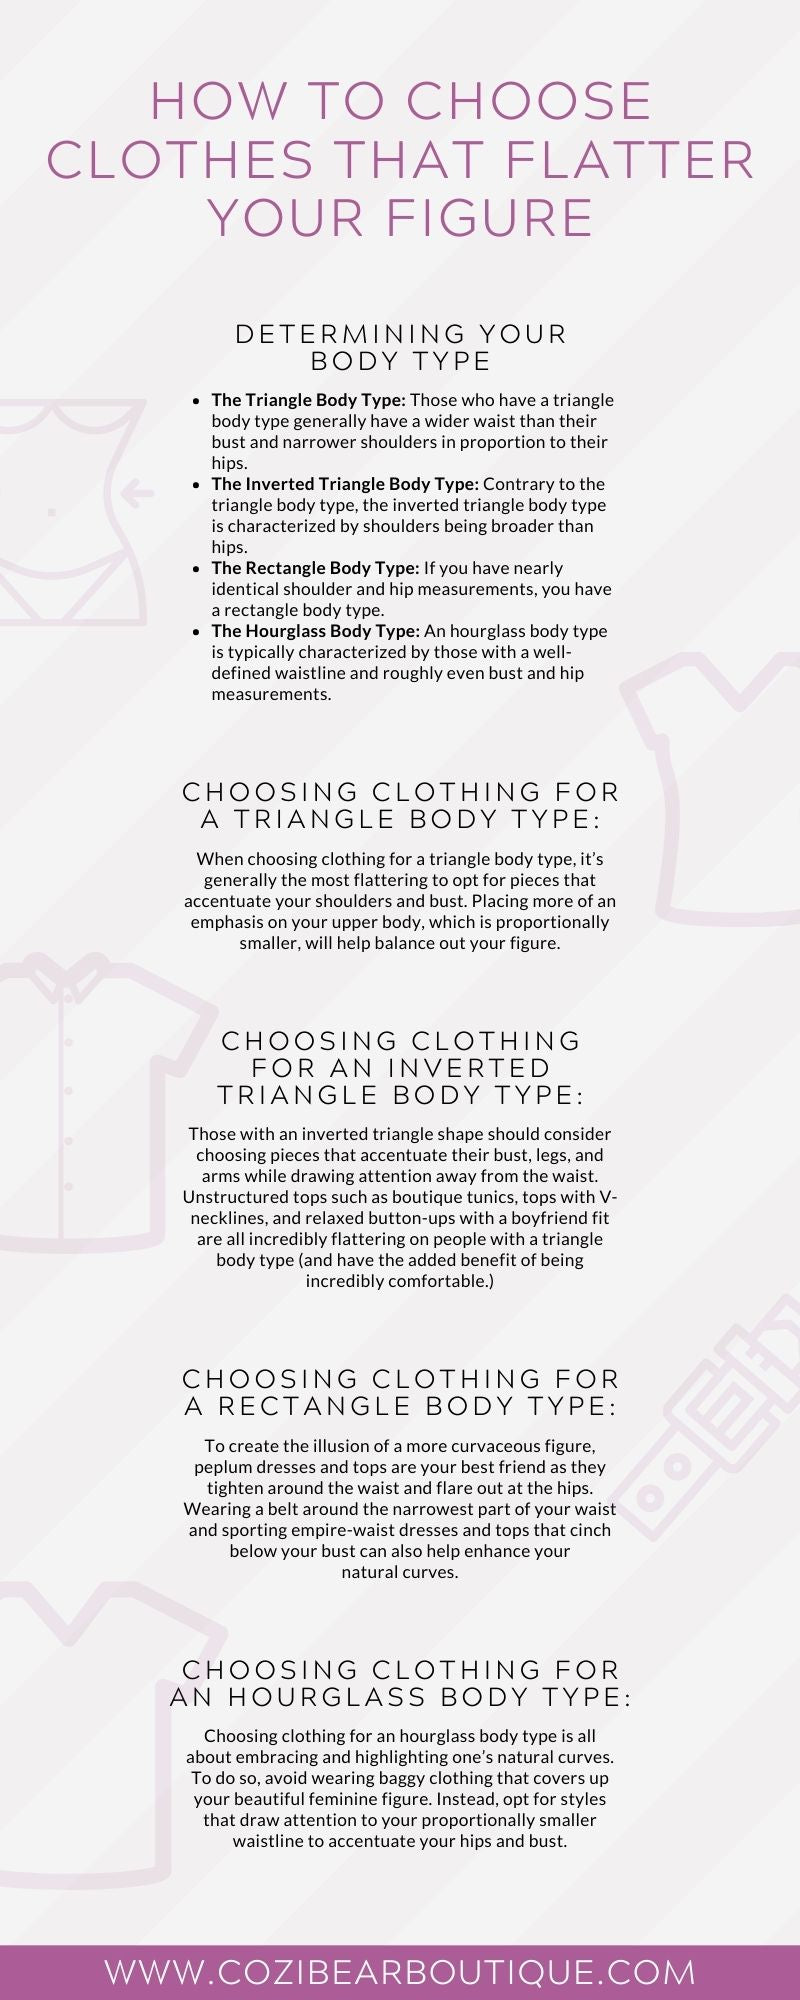 Choose Clothes That Flatter Your Figure